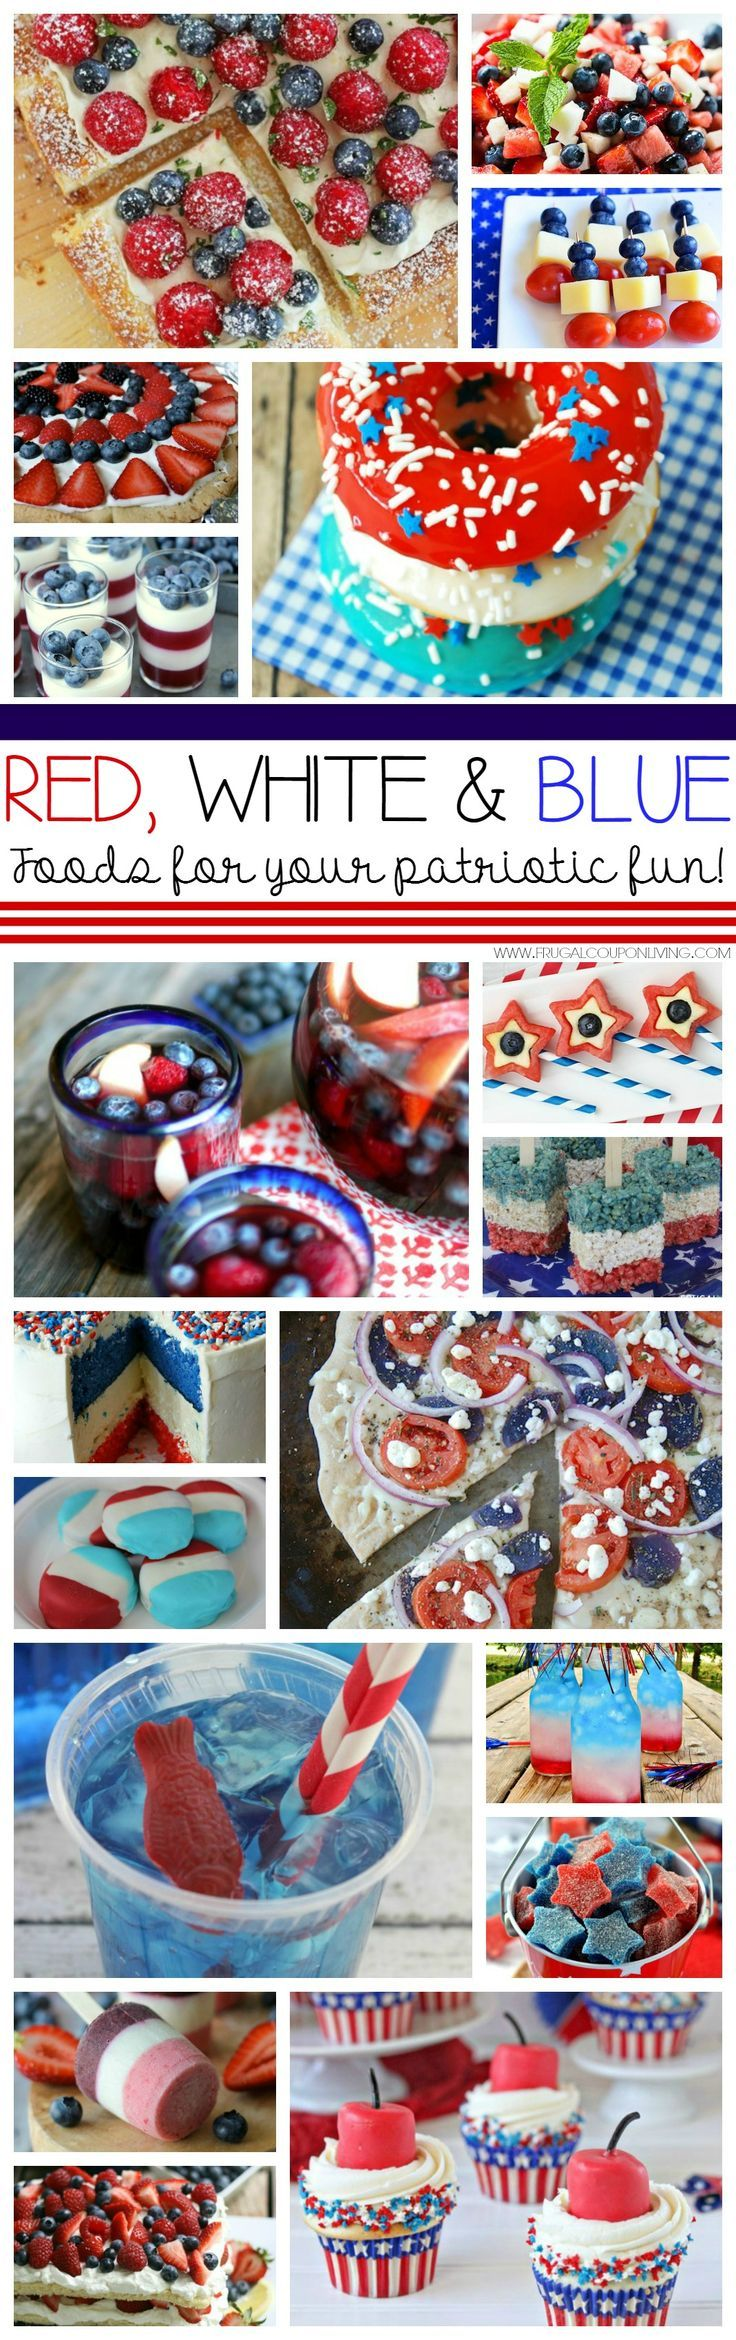 Red, White & Blue Foods – Ideas for Your Gathering. Red White & Blue Foods for...